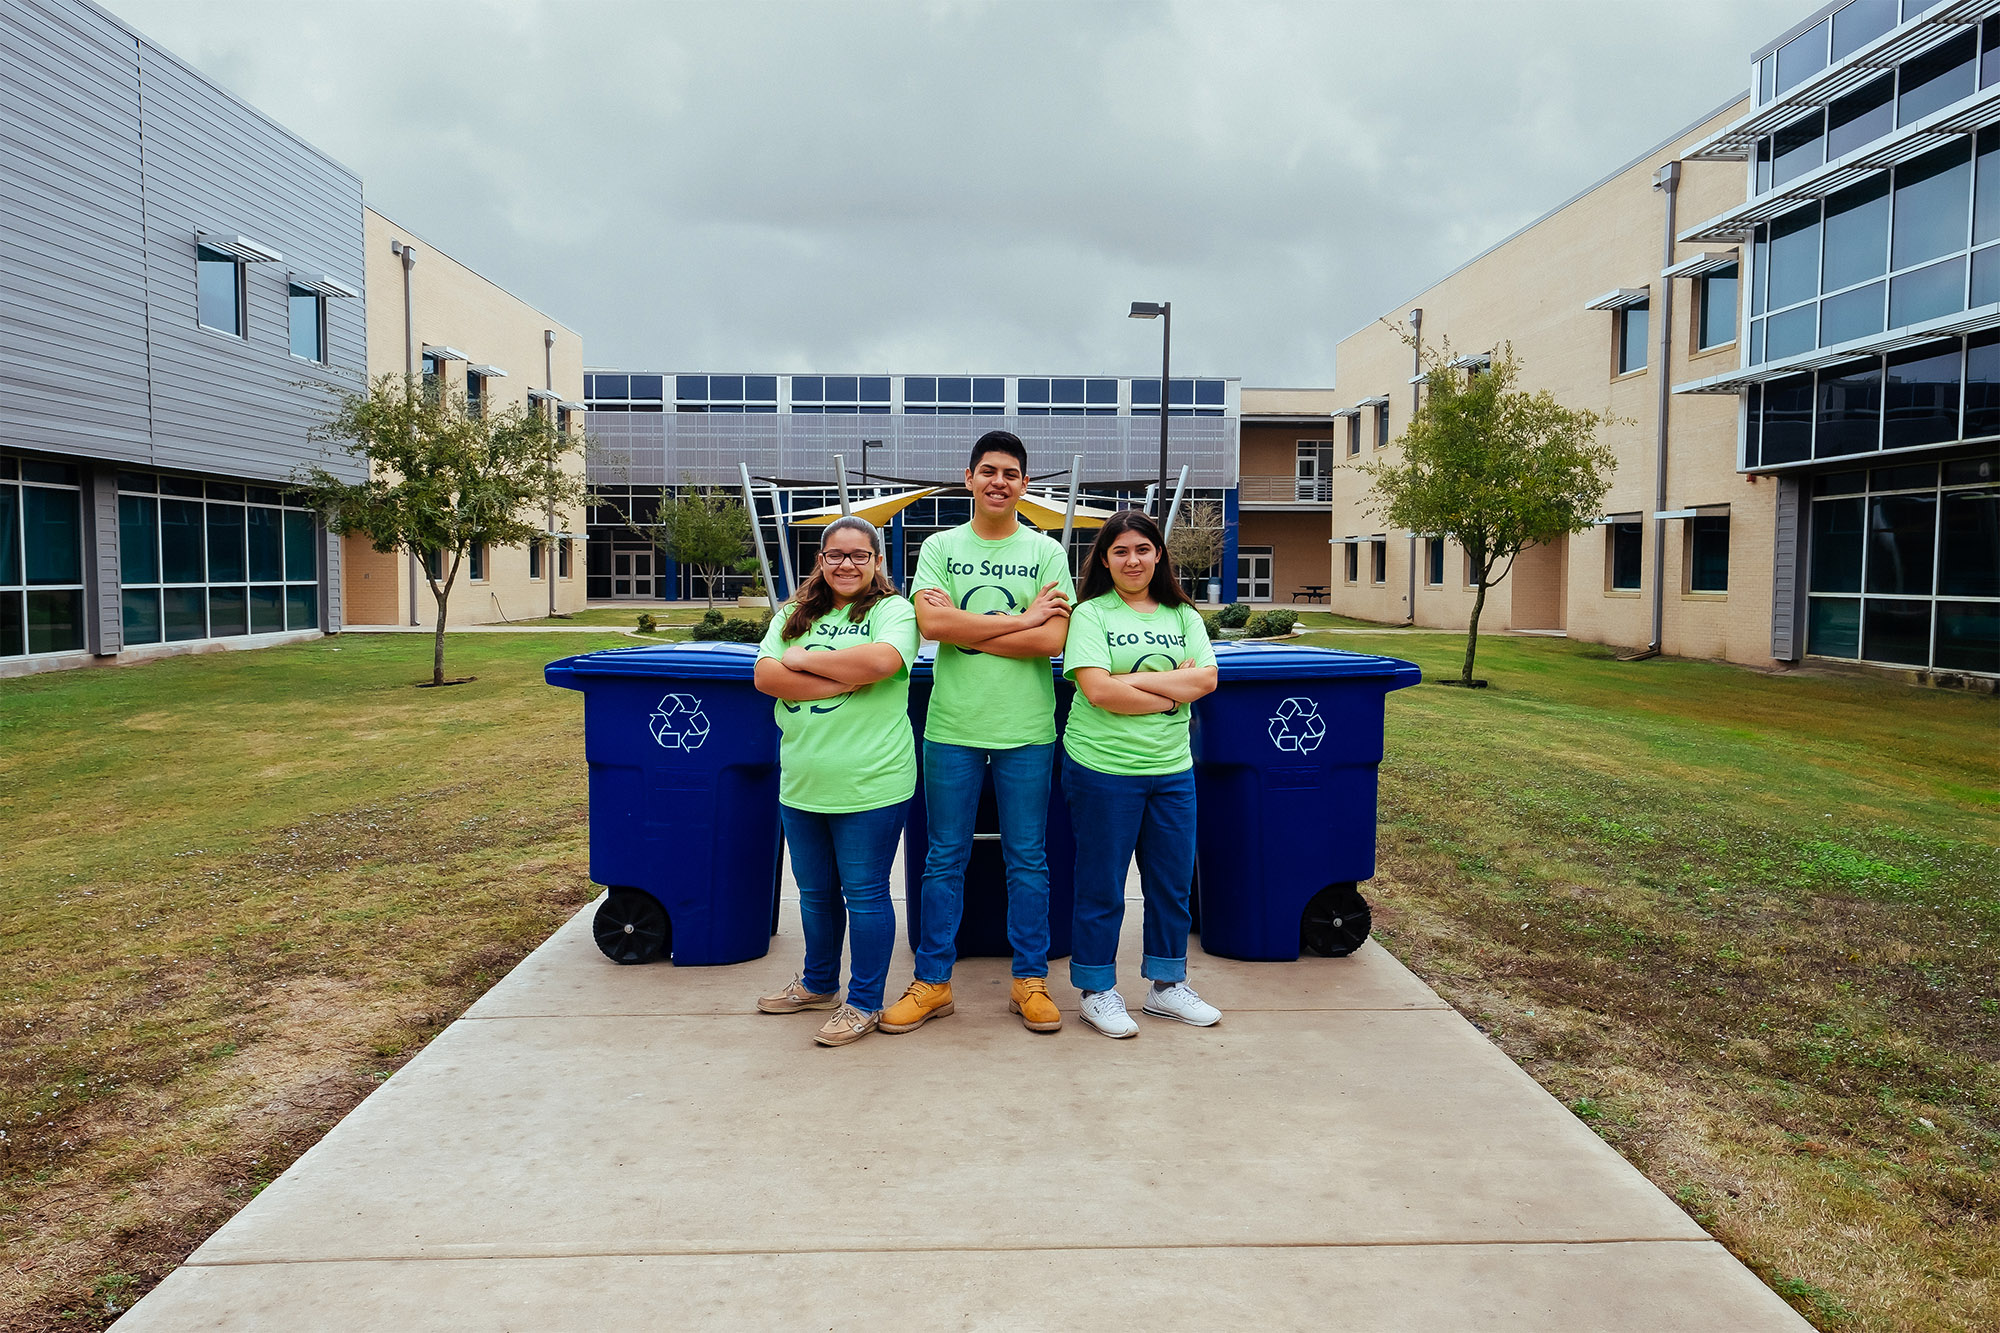 Cano Eco Squad collects over 1,300 pounds of recyclable materials